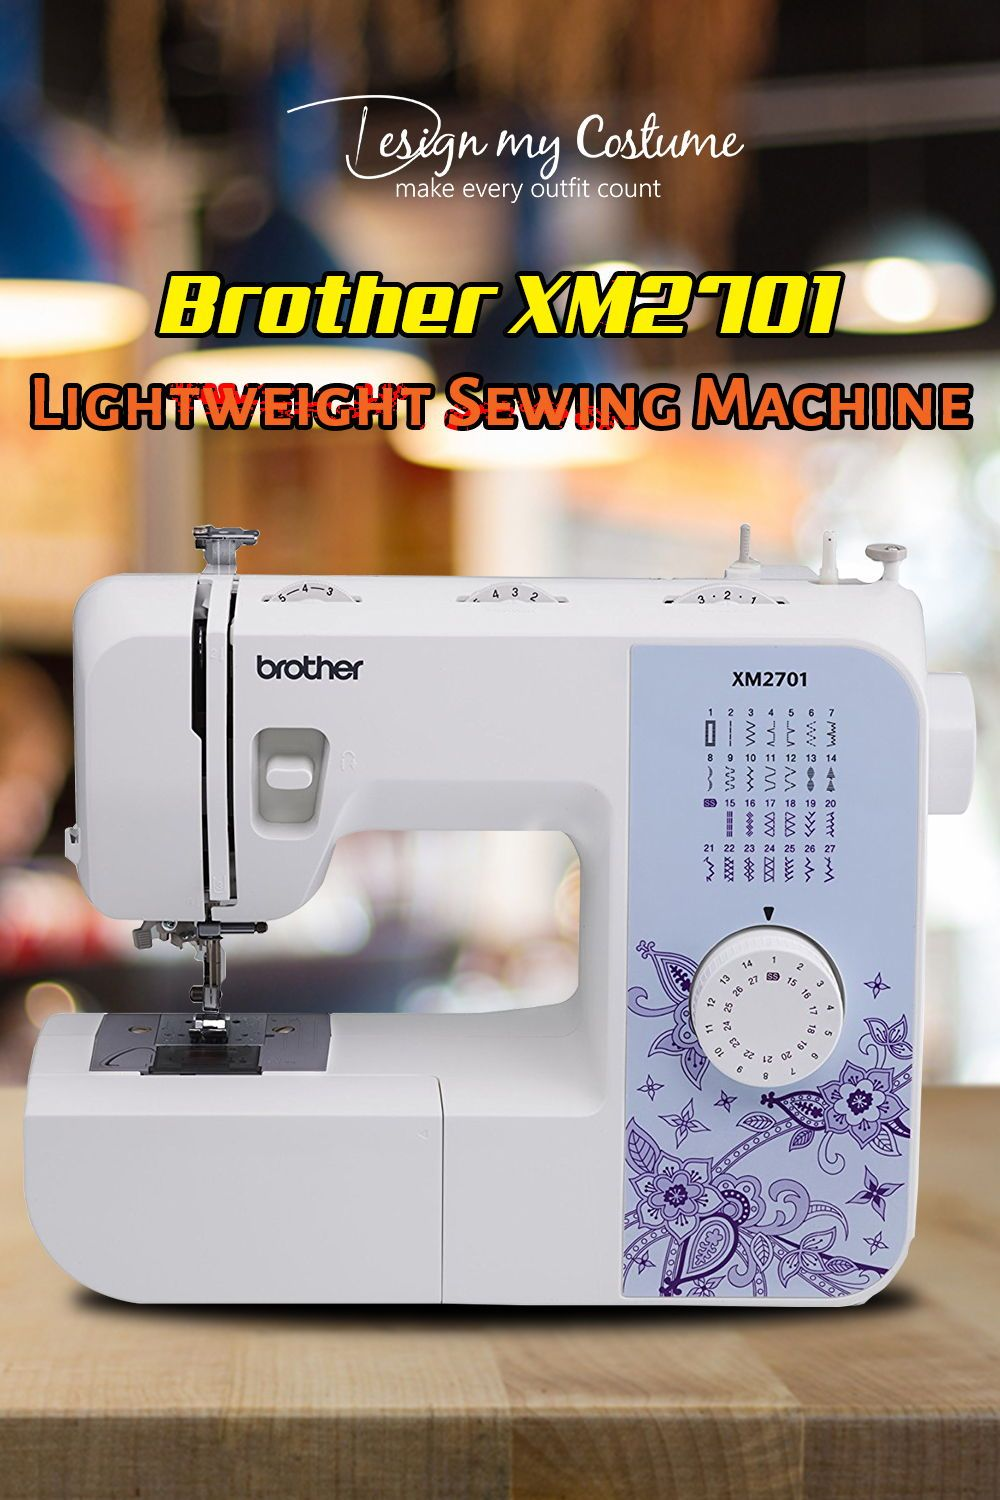 Brother Xm2701 Lightweight Sewing Machine Comparison Chart And Embroidery